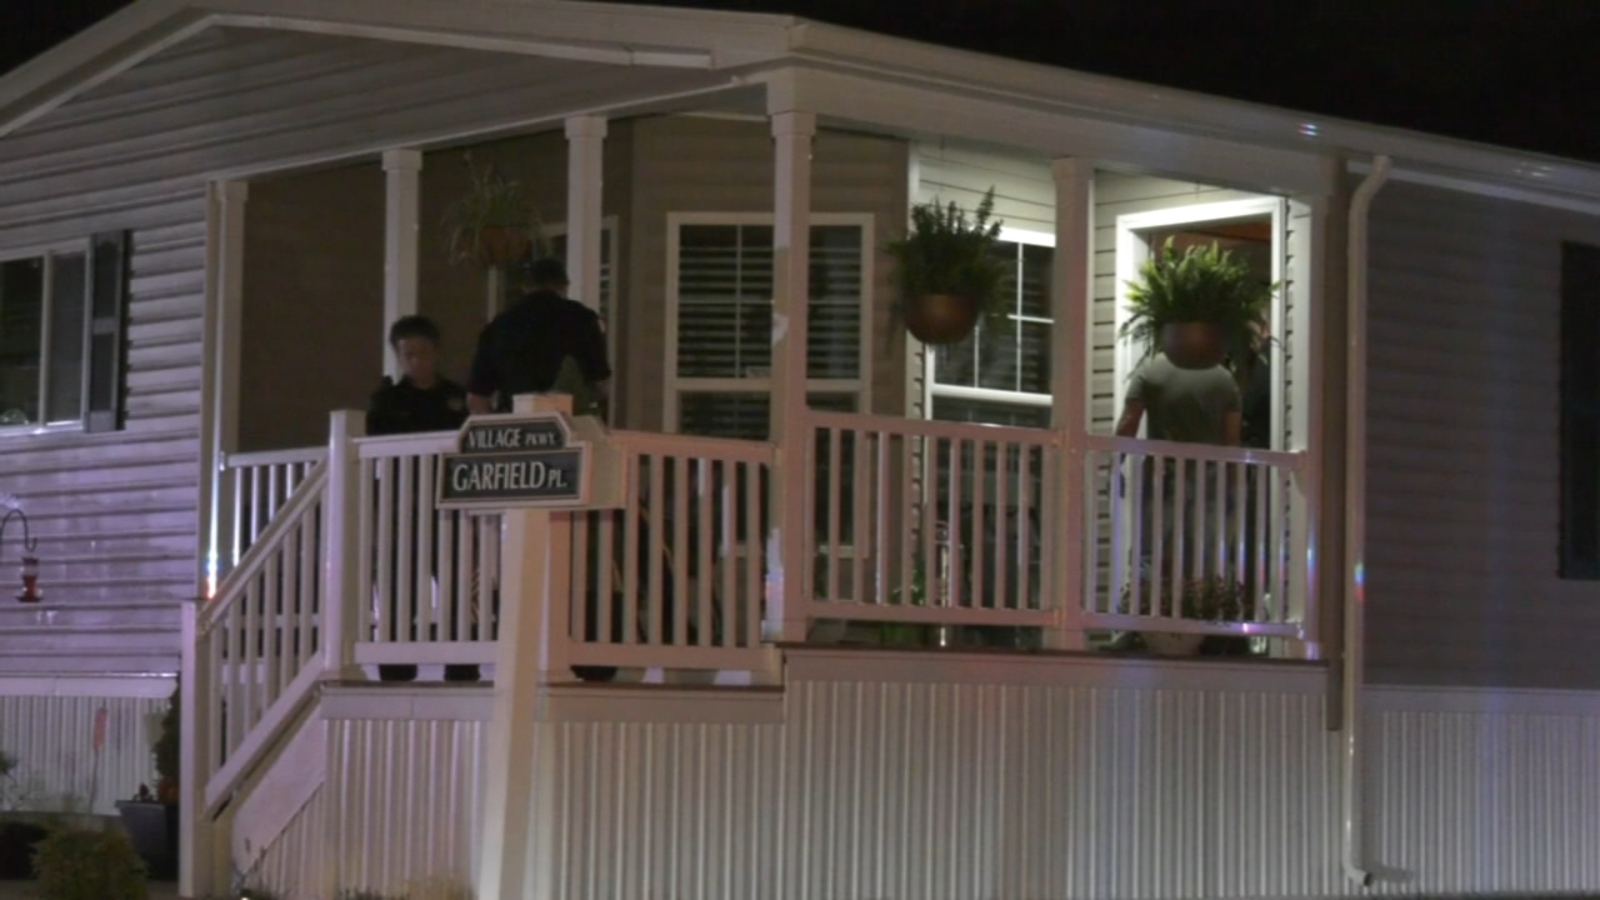 Man Hurt In Fire At Home In Gloucester County N J 6abc Philadelphia